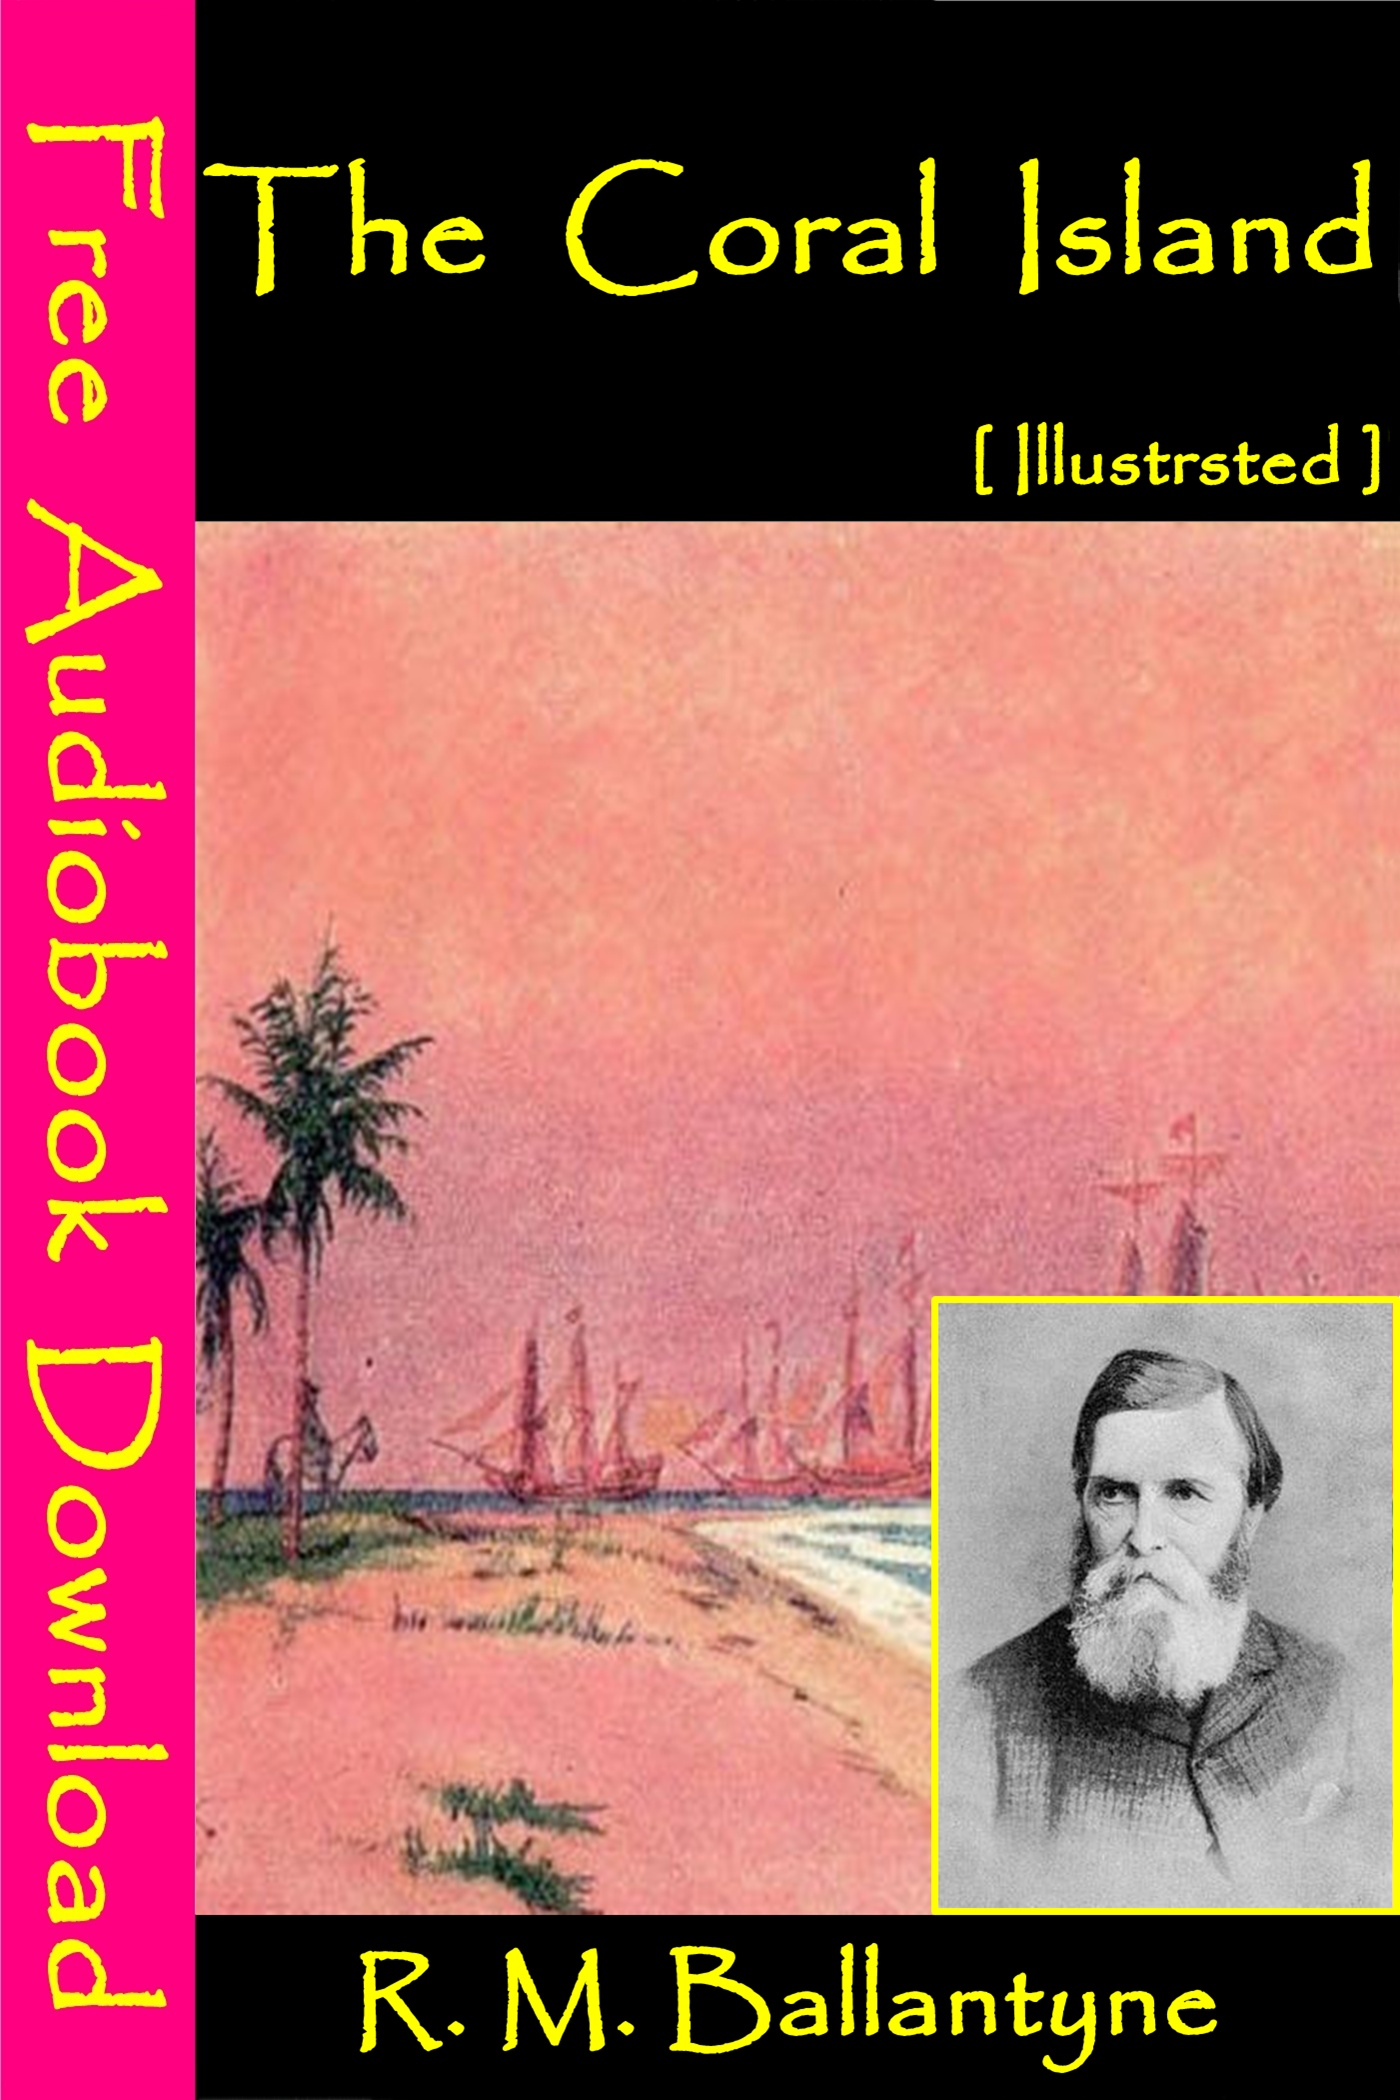 R. M. Ballantyne - The Coral Island [ Illustrated ]